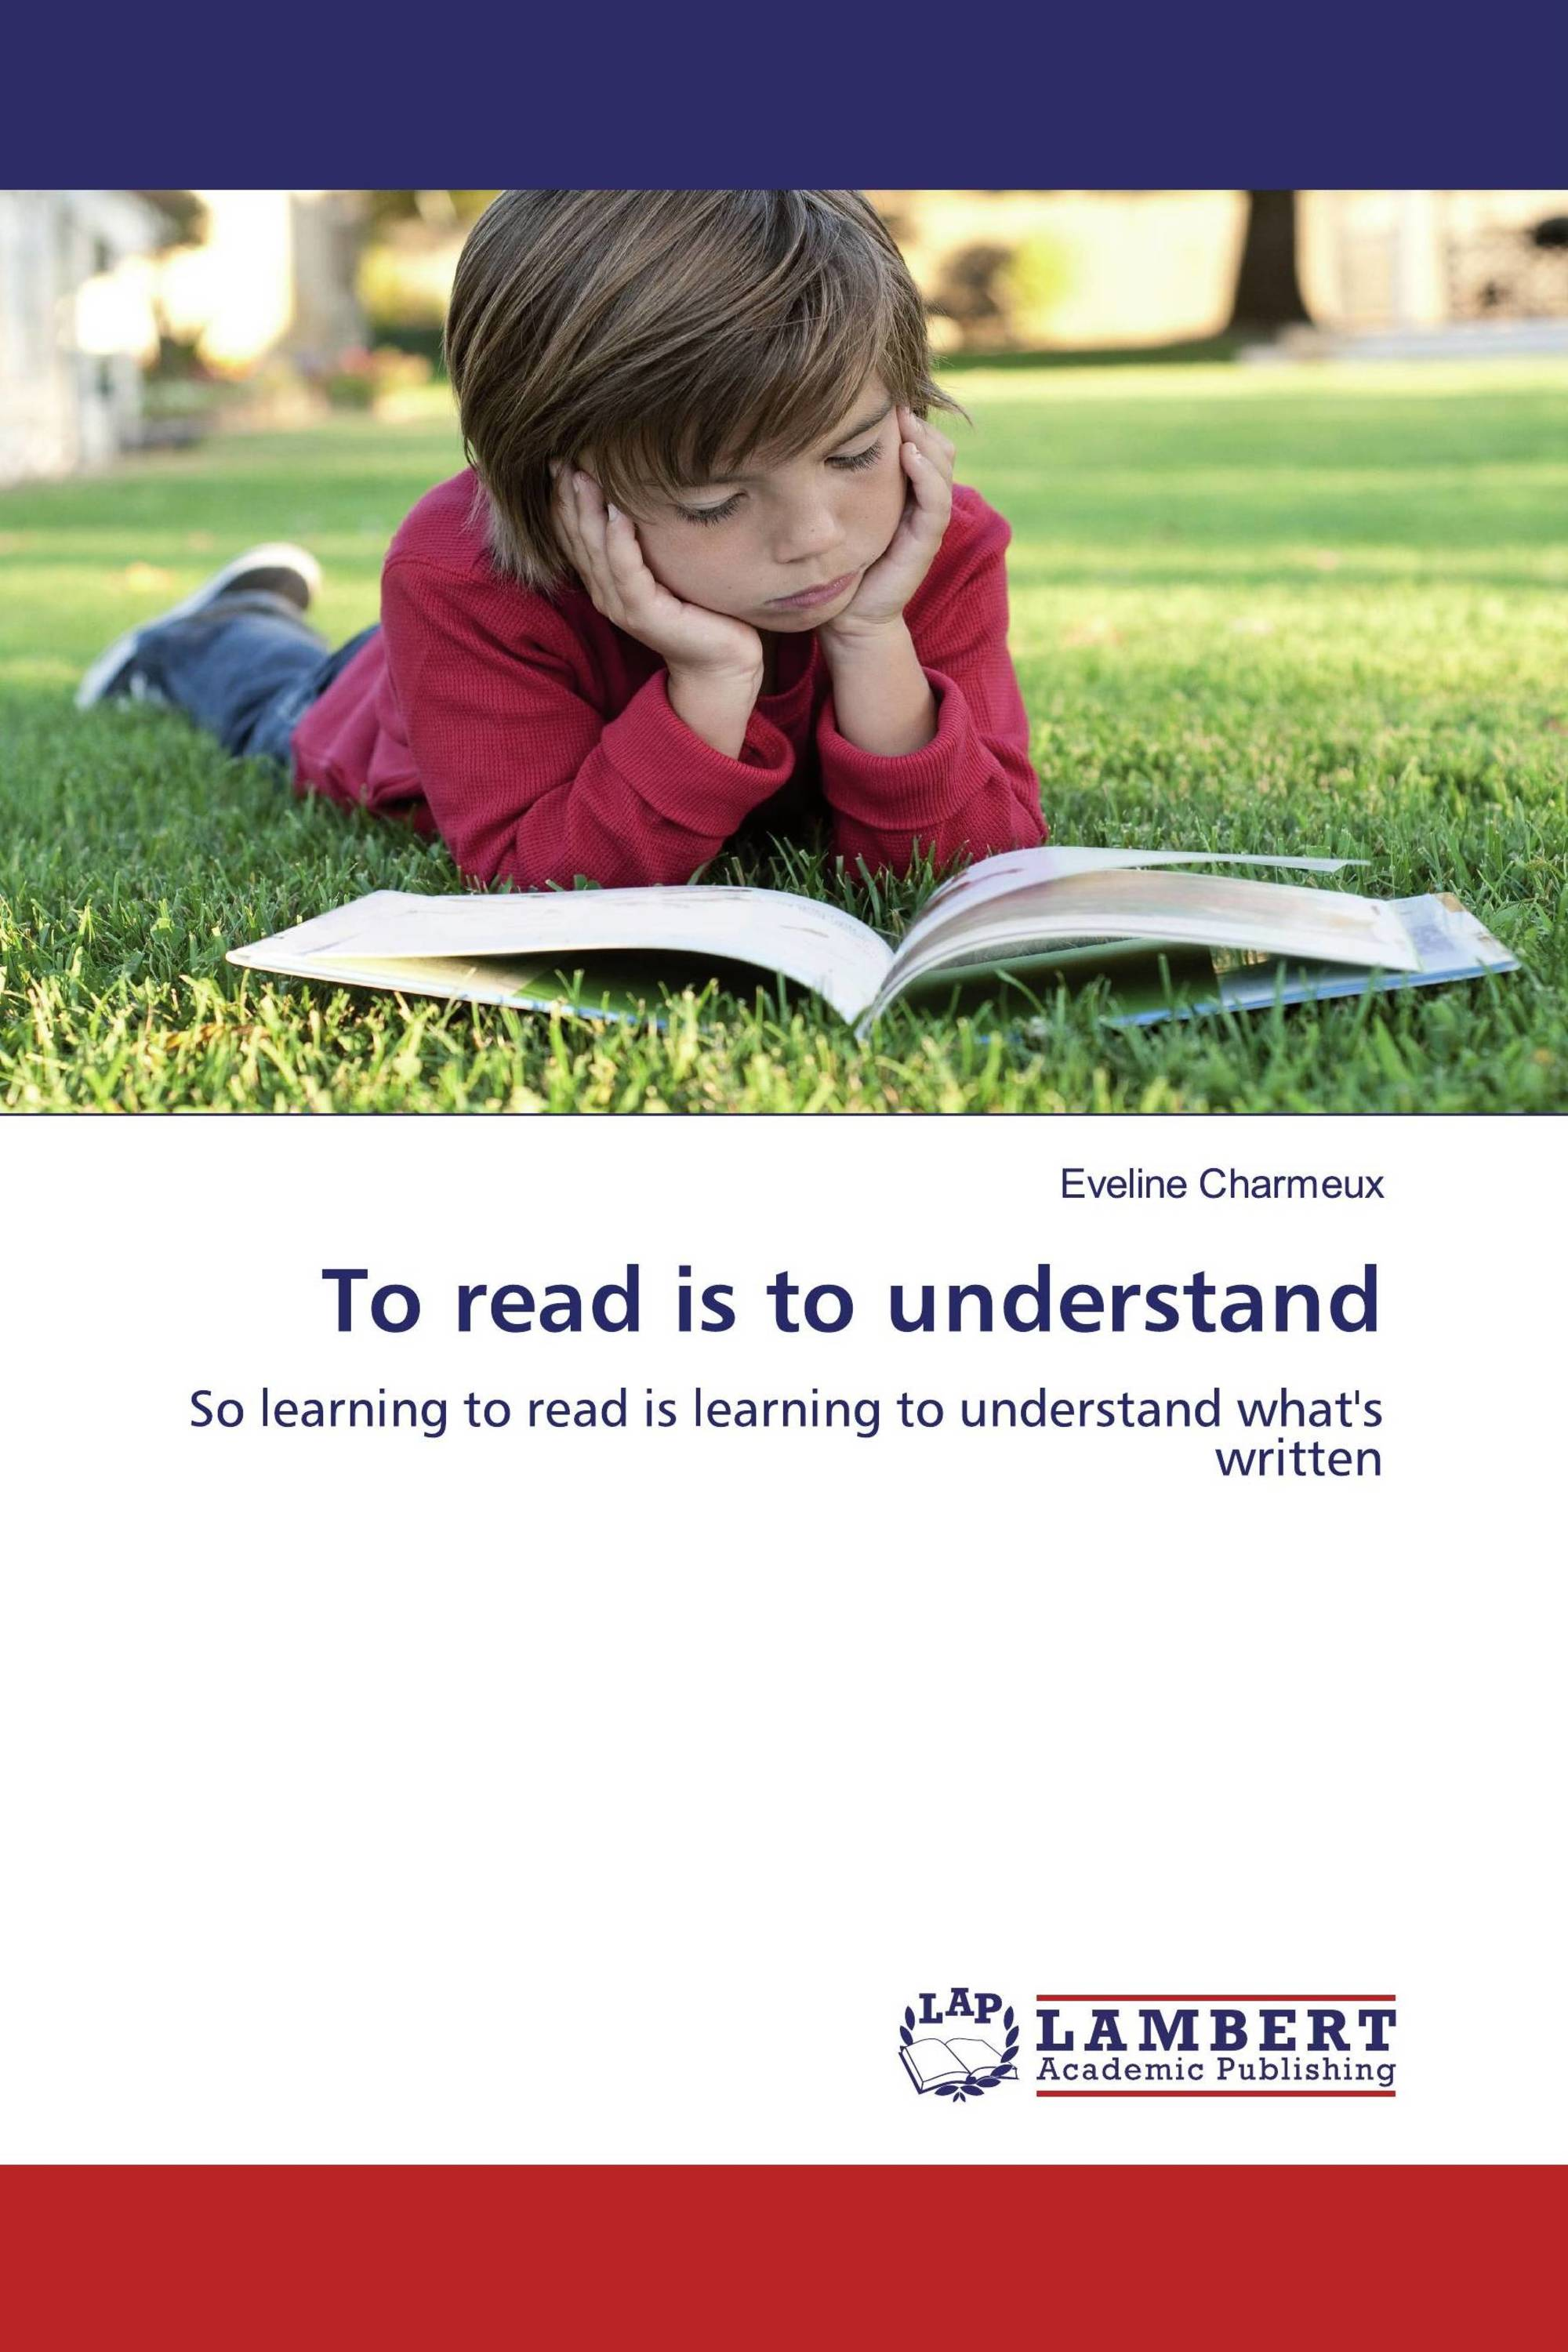 To read is to understand